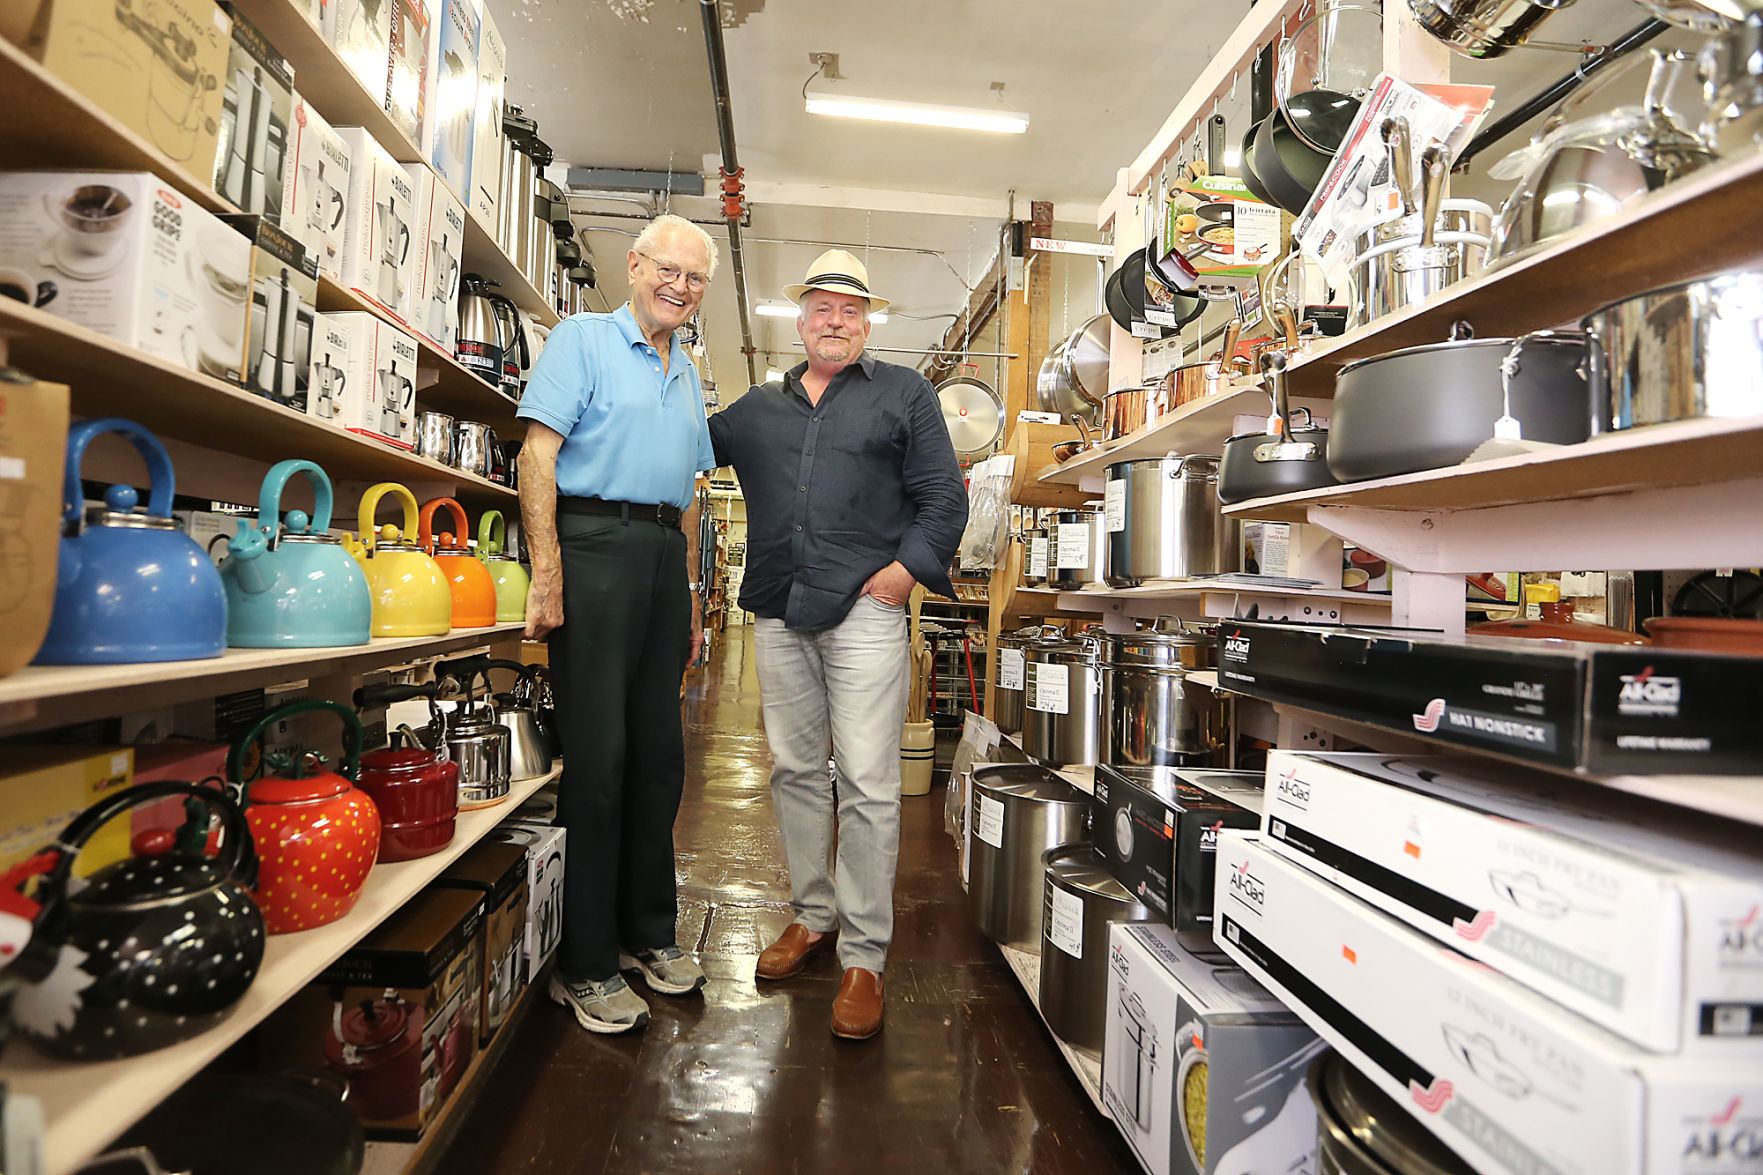 kitchen store com oak cart new buyer of shackford s downtown napa iconic